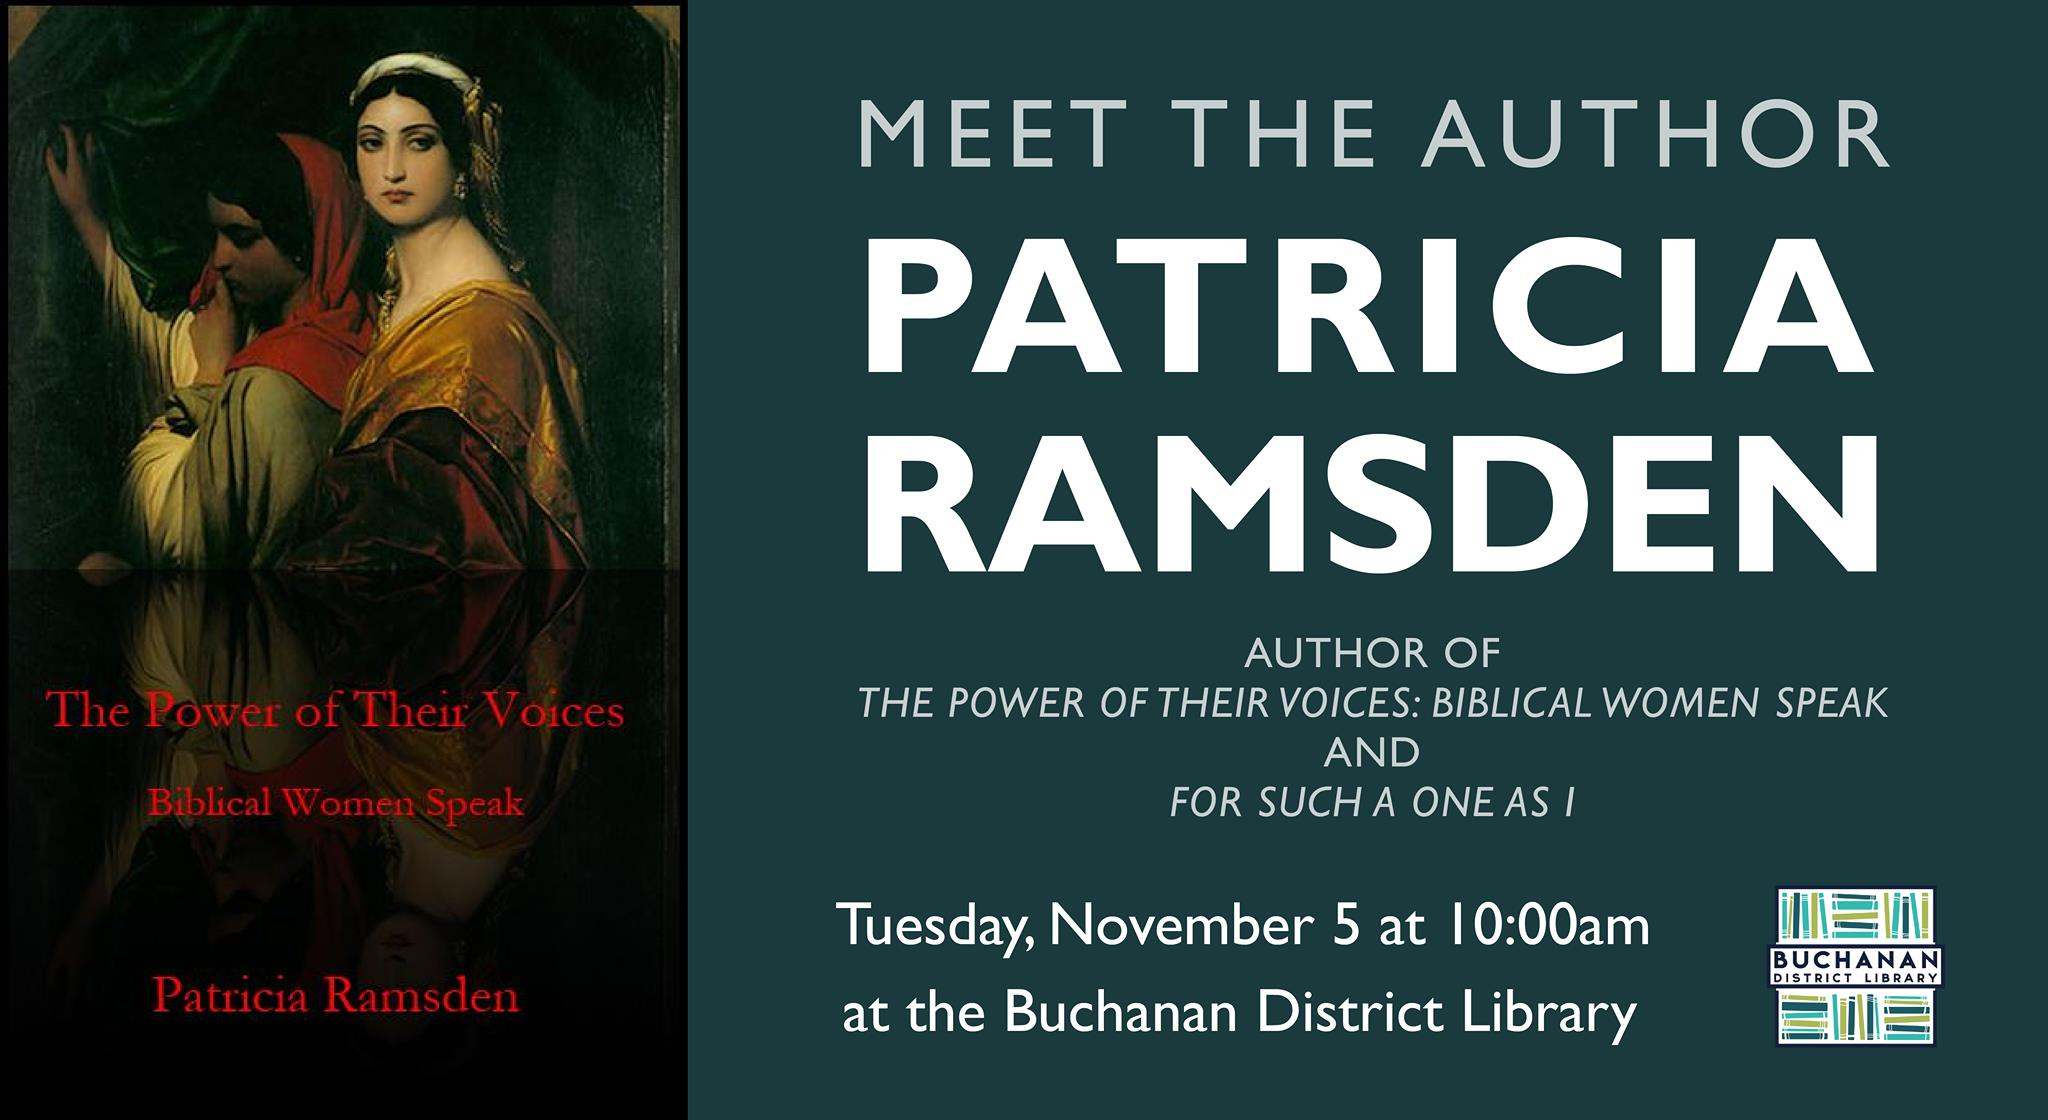 Meet the Author: Patricia Ramsden